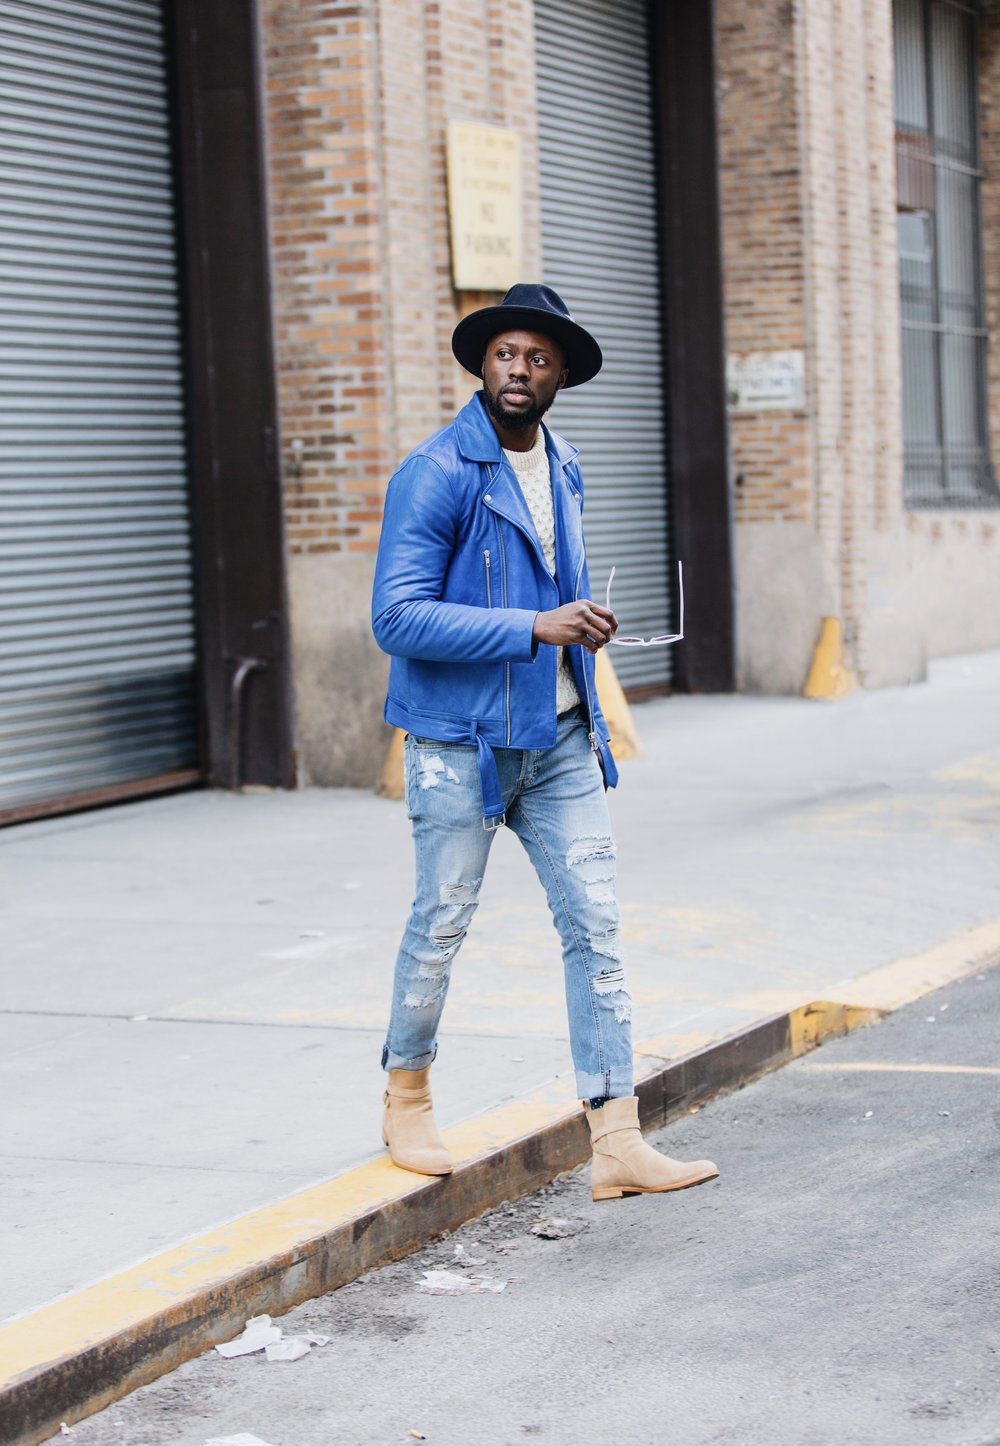 The Creative Gentleman wearing Taft Dylan boot in beige with royal blue leather jacket, cream waffle sweater, light blue ripped jeans, clear framed sunglasses, and navy blue fedora hat. This image was taking as part of The Creative Gentleman and Taft collaboration for New York Fashion Week Men's 2018 NYFWM AW18 on how to style Taft Boots.